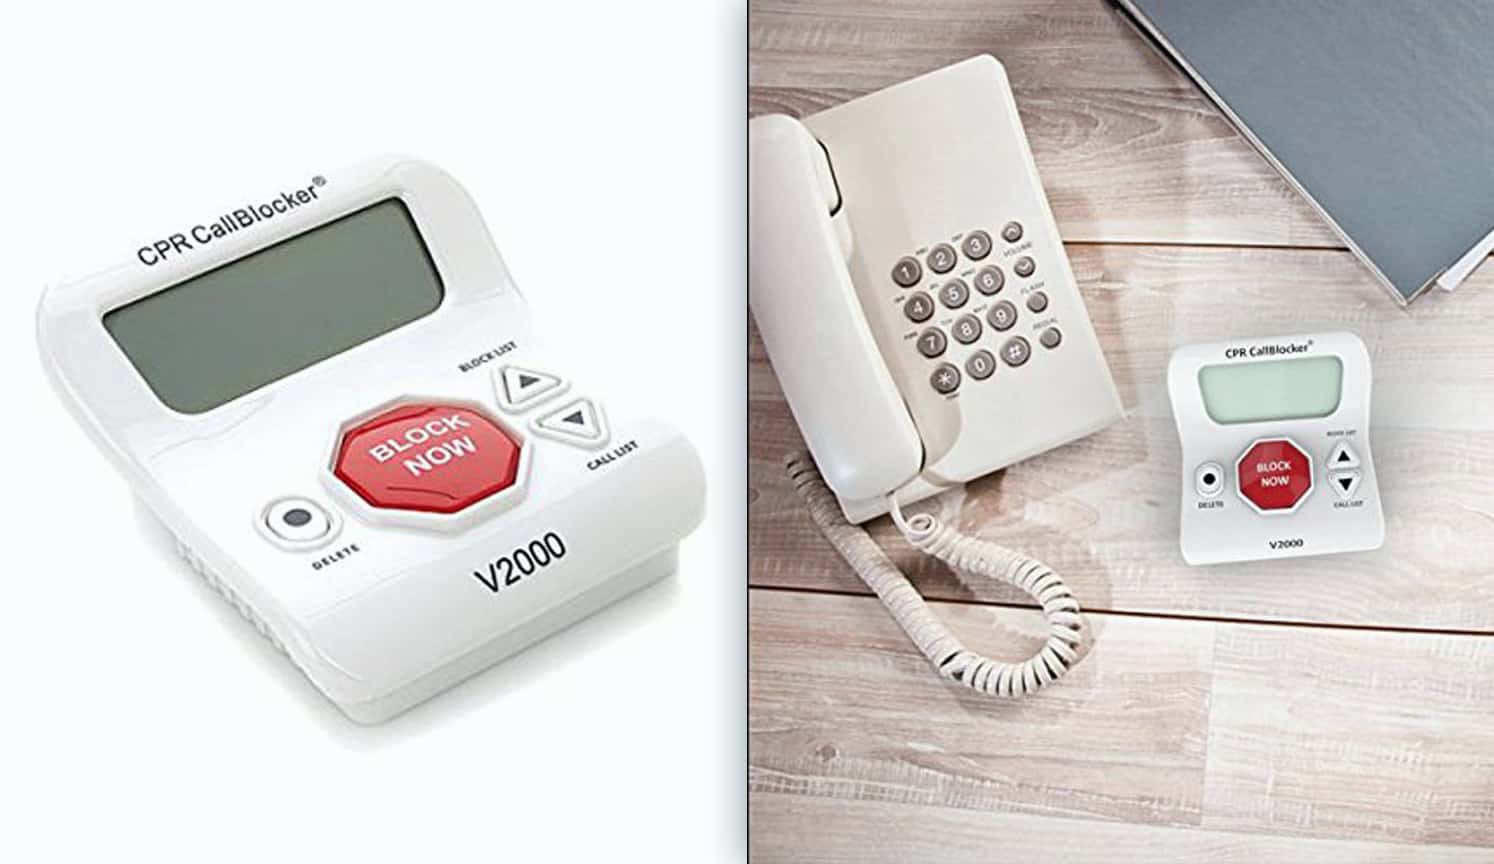 Phone Number Blocker as the third related product of the Best Phone Call Blocker